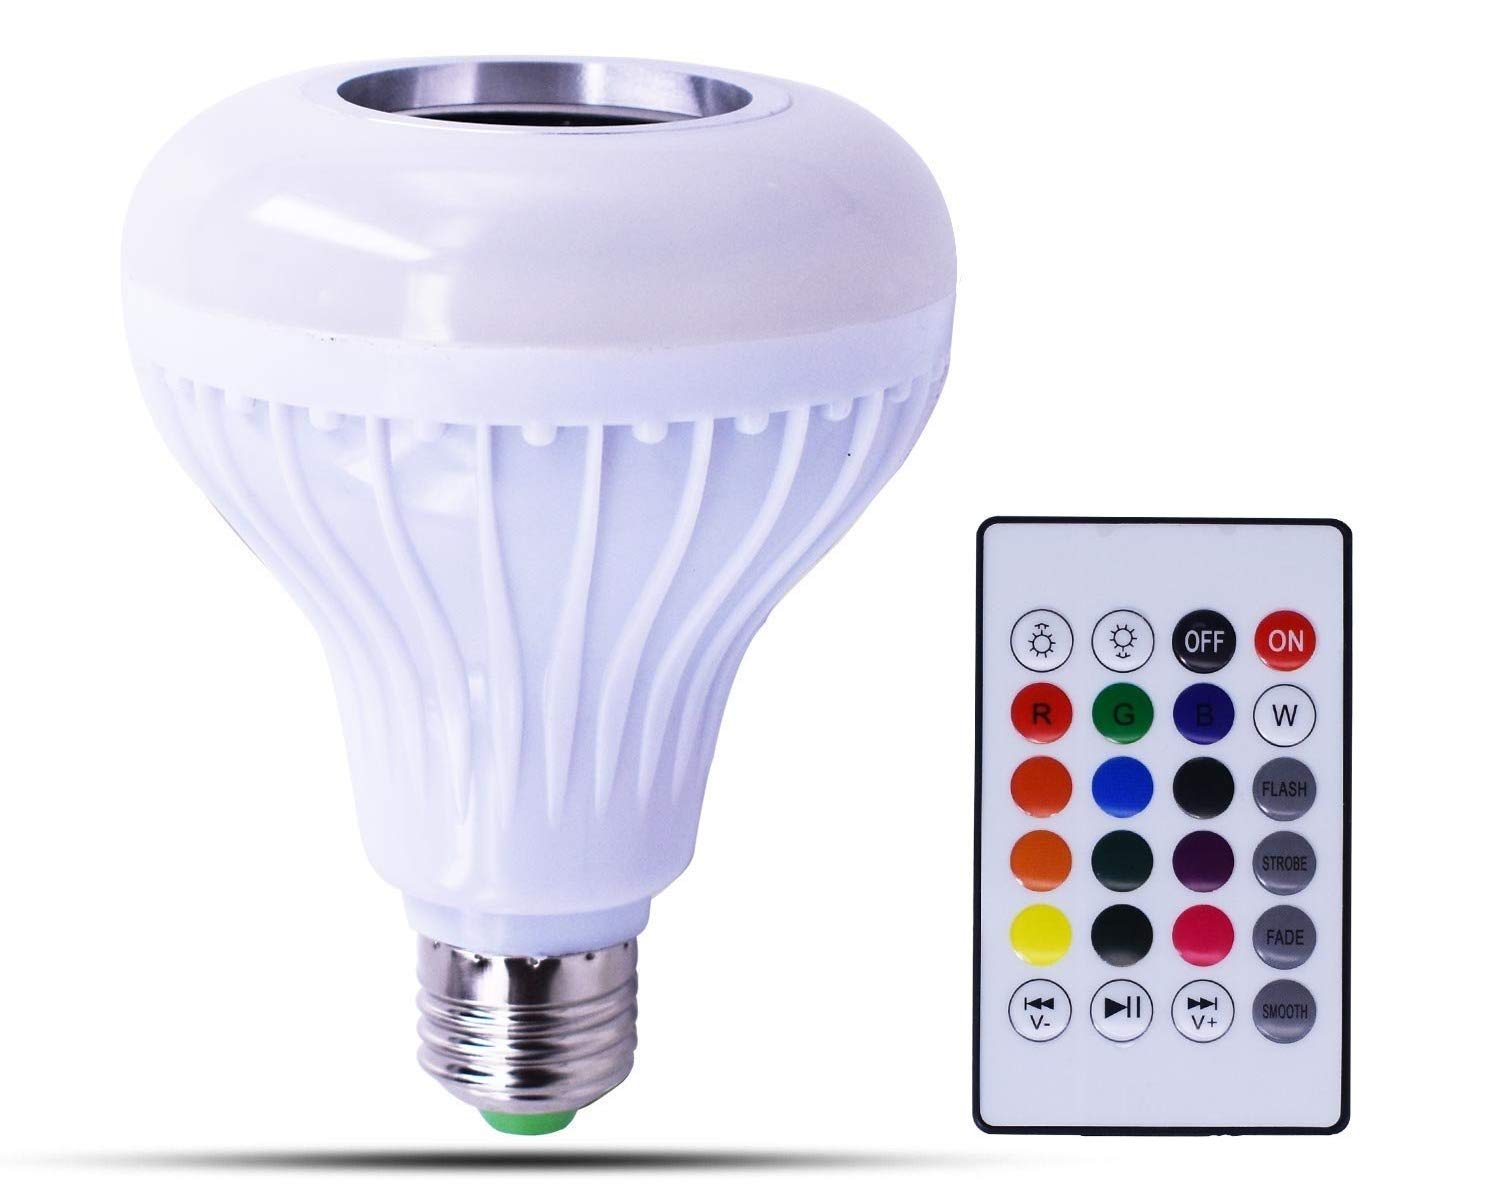 Canmox LED MUSIC BULB SPEAKER- Multi-color changing LED light bulb with Built-in Stereo Speaker connected by Bluetooth/wireless